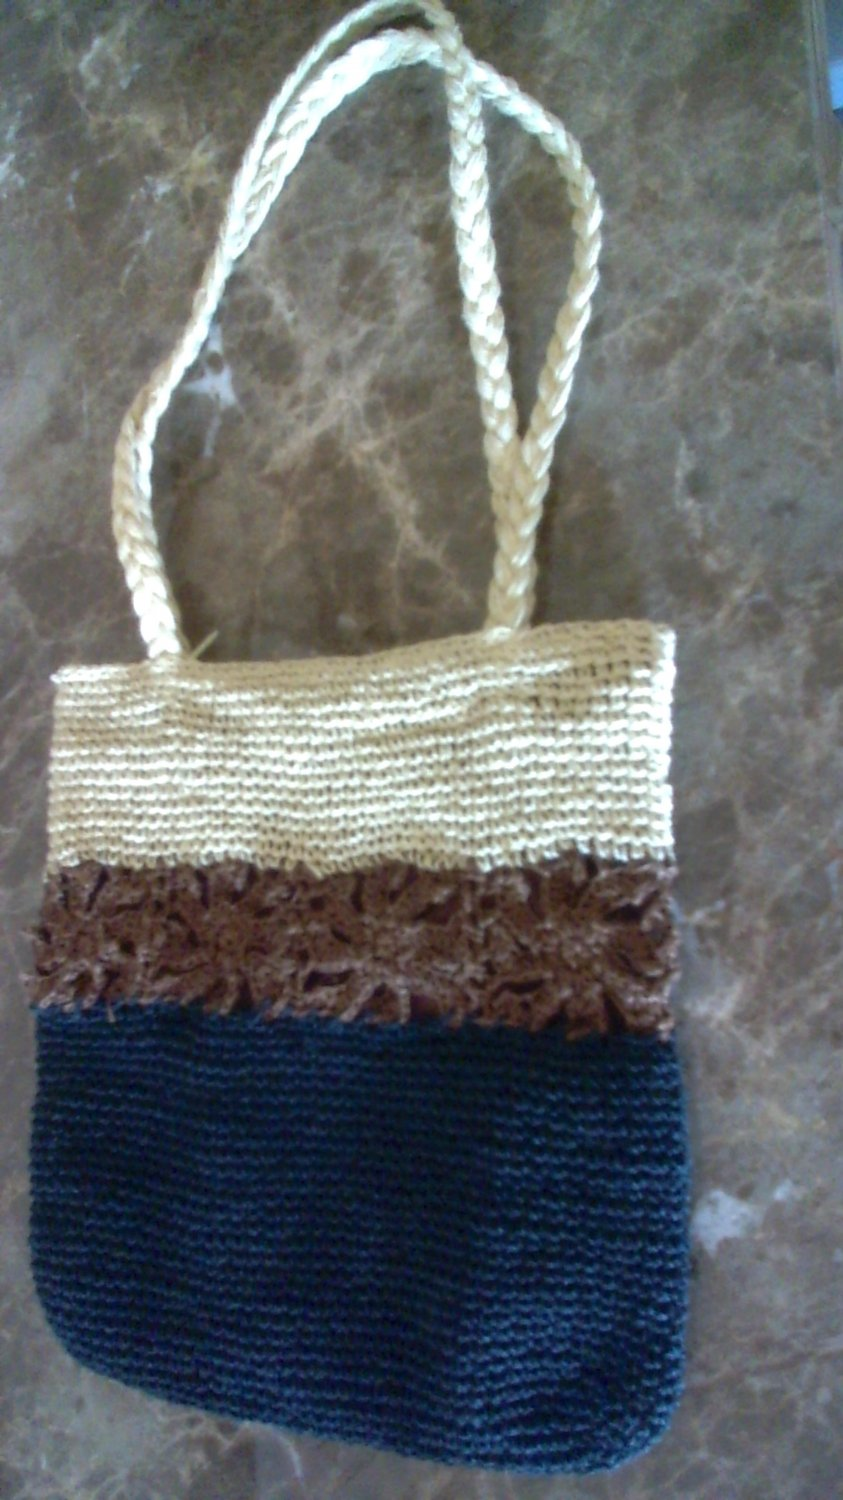 Crocheted purse in brown black and cream color